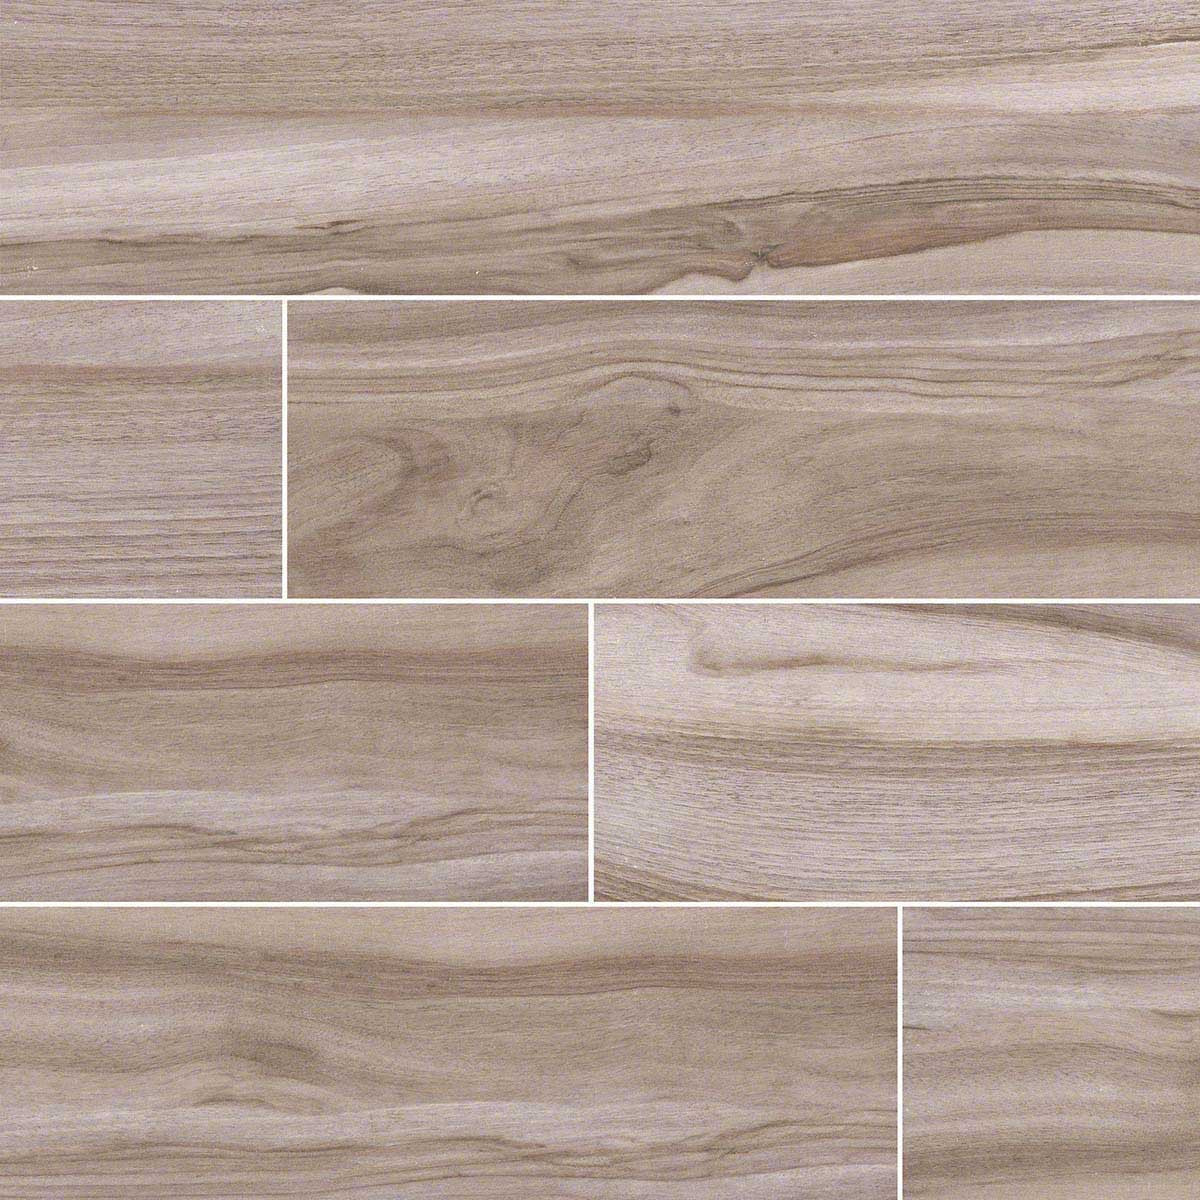 Msi tile ceramic porcelain tiles aspenwood ash sinere home decor click to view large image dailygadgetfo Image collections